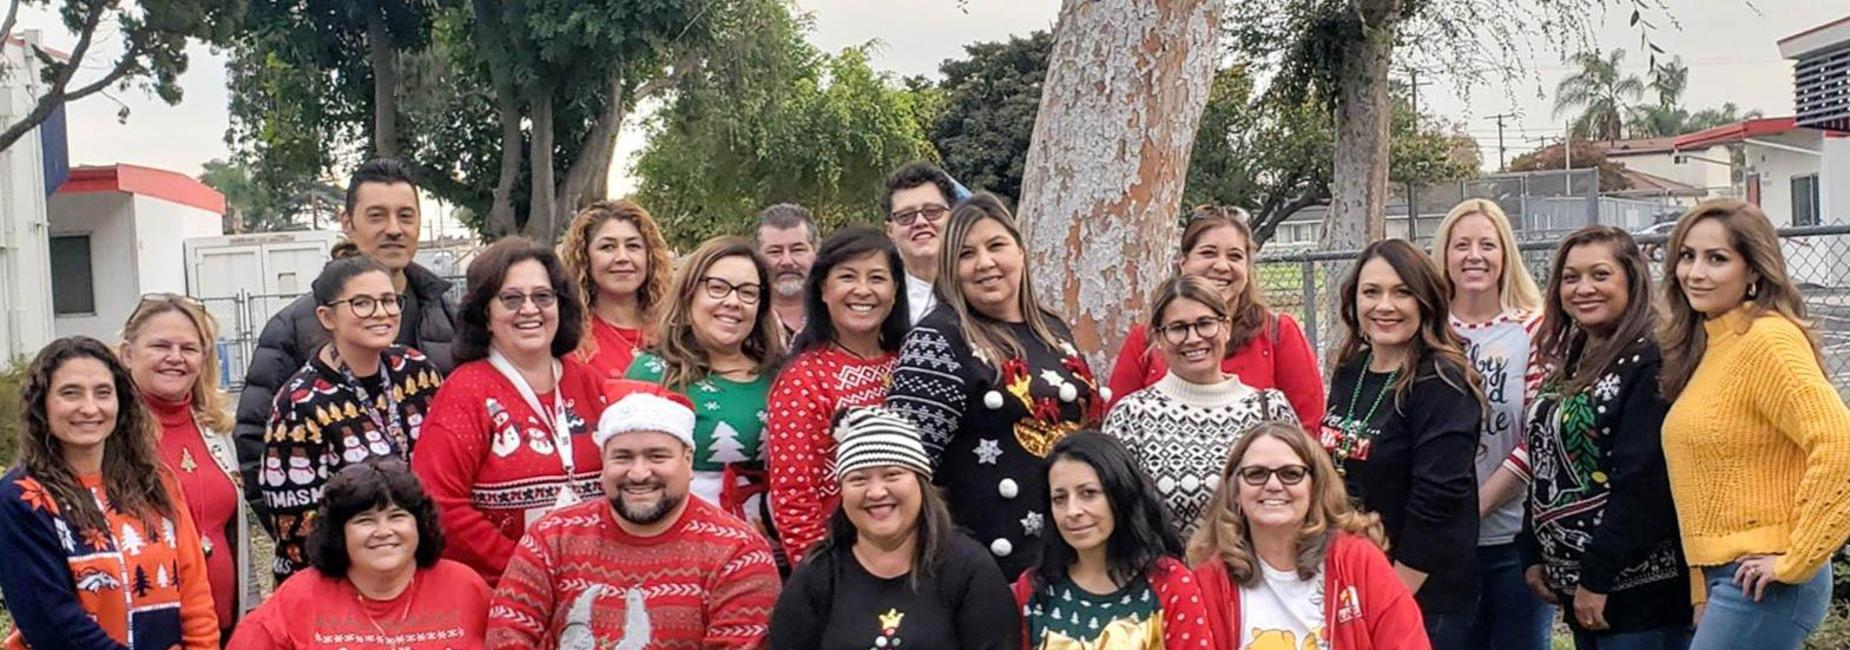 Happy Holidays from Rivera Elementary